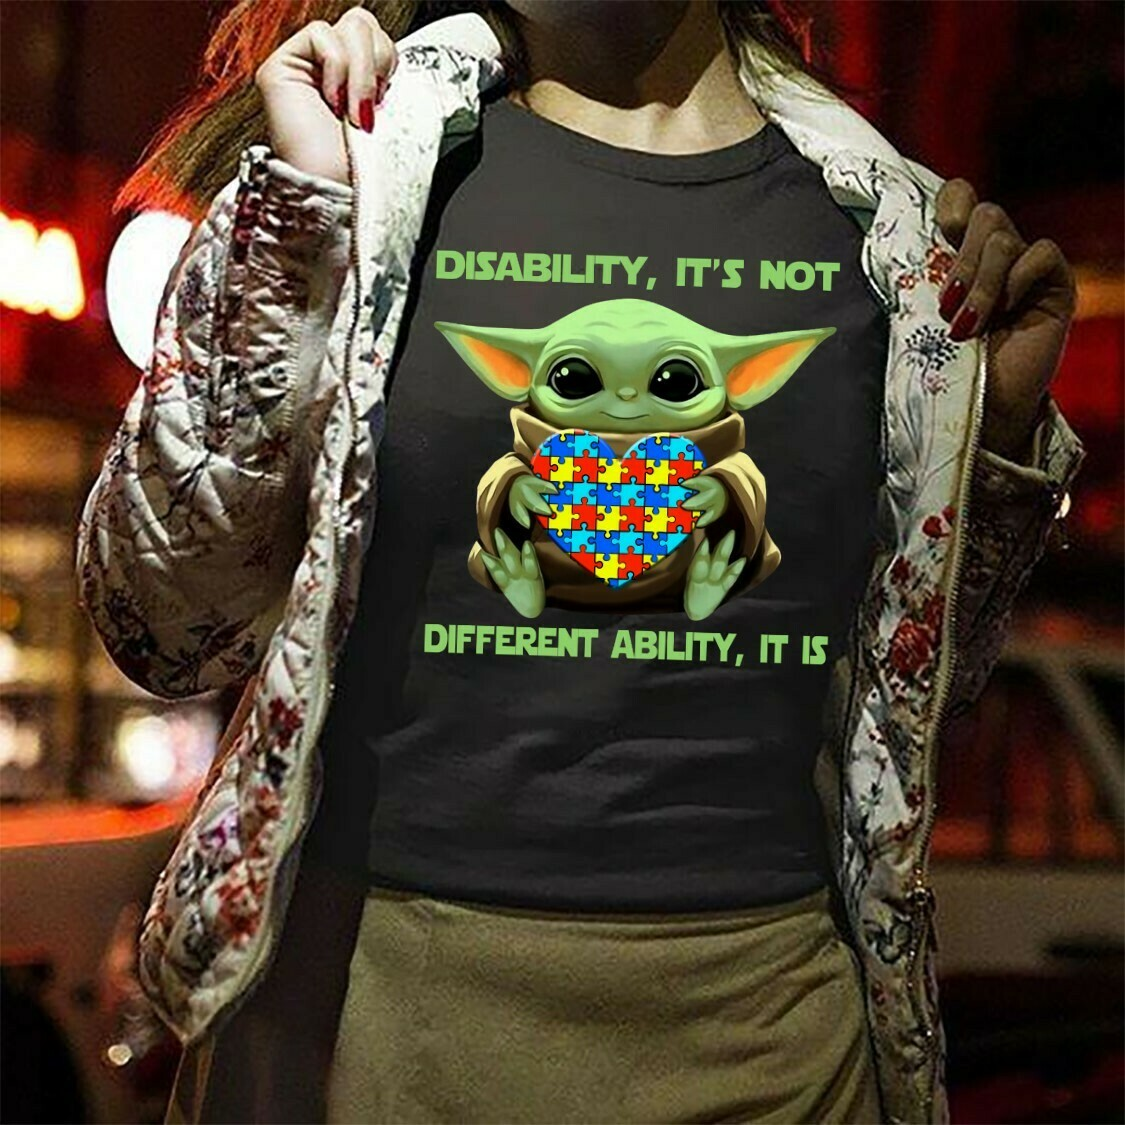 Star Wars Yoda,Baby Yoda Disability It's Not It's Differen Ability Baby Yoda Hug Cancer Awareness Hope for A Cure,Autism Awareness T shirt Long Sleeve Sweatshirt Hoodie Jolly Family Gifts